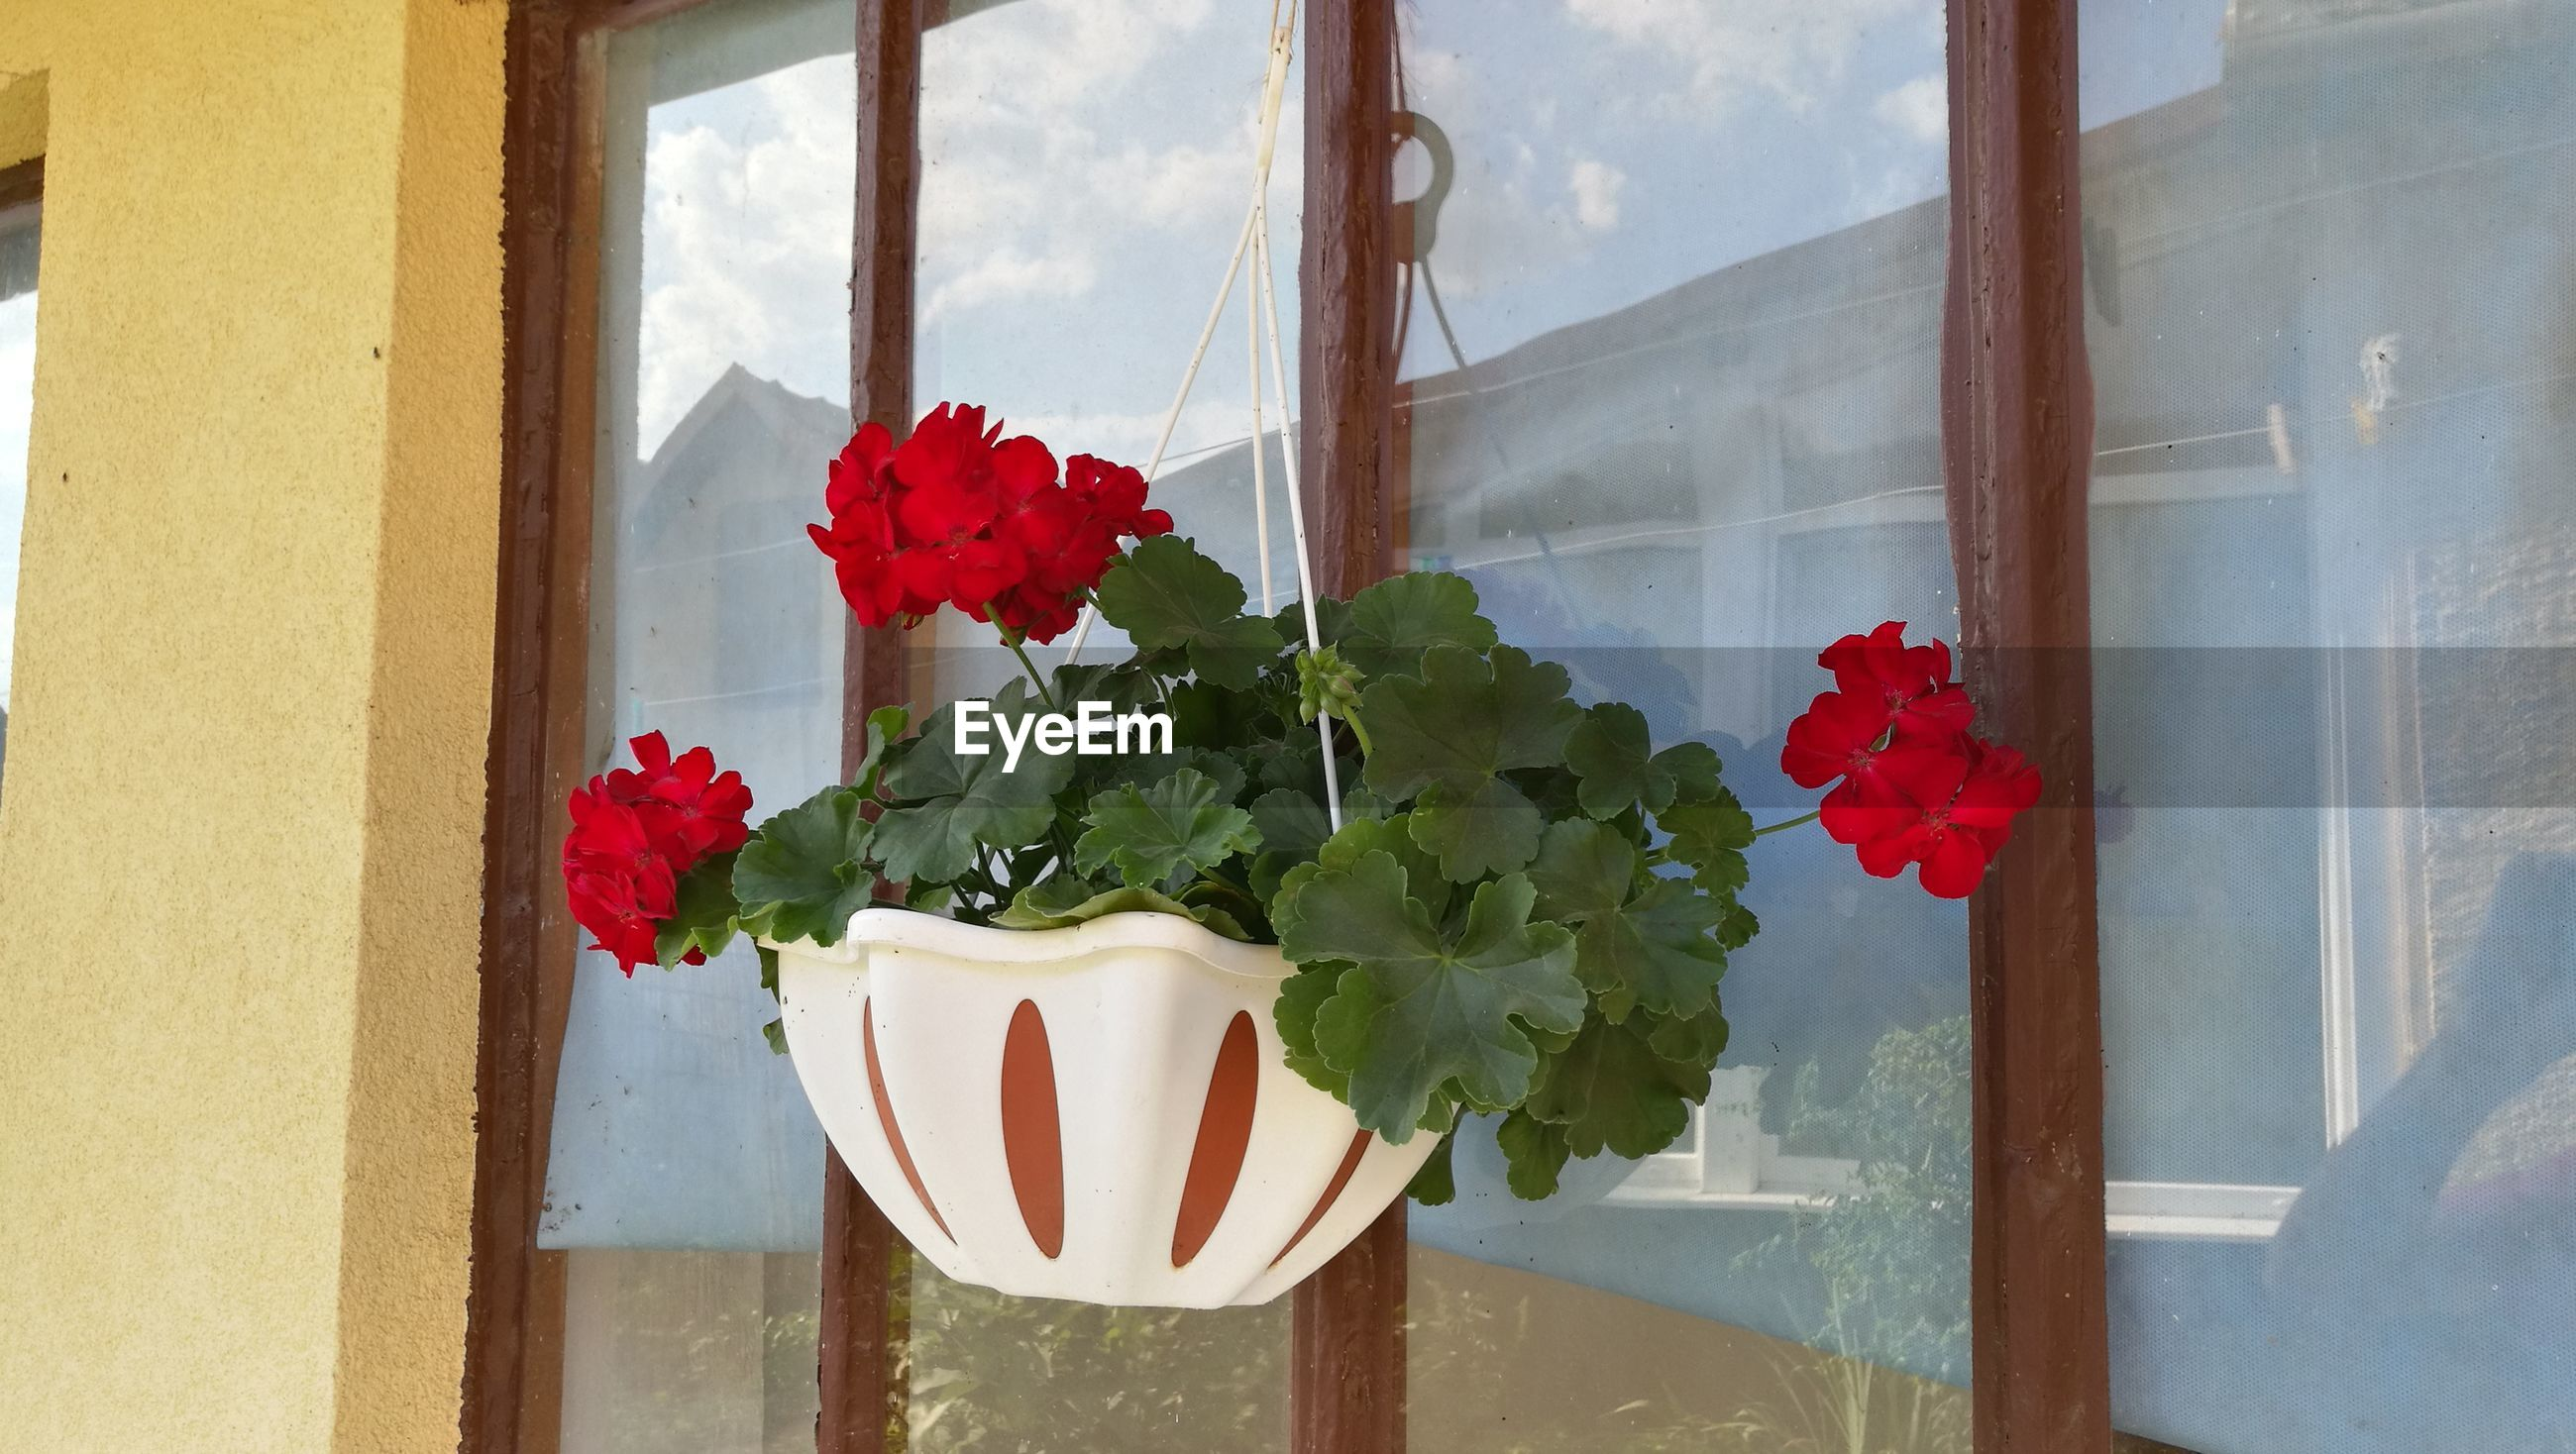 Close-up of potted plant by window